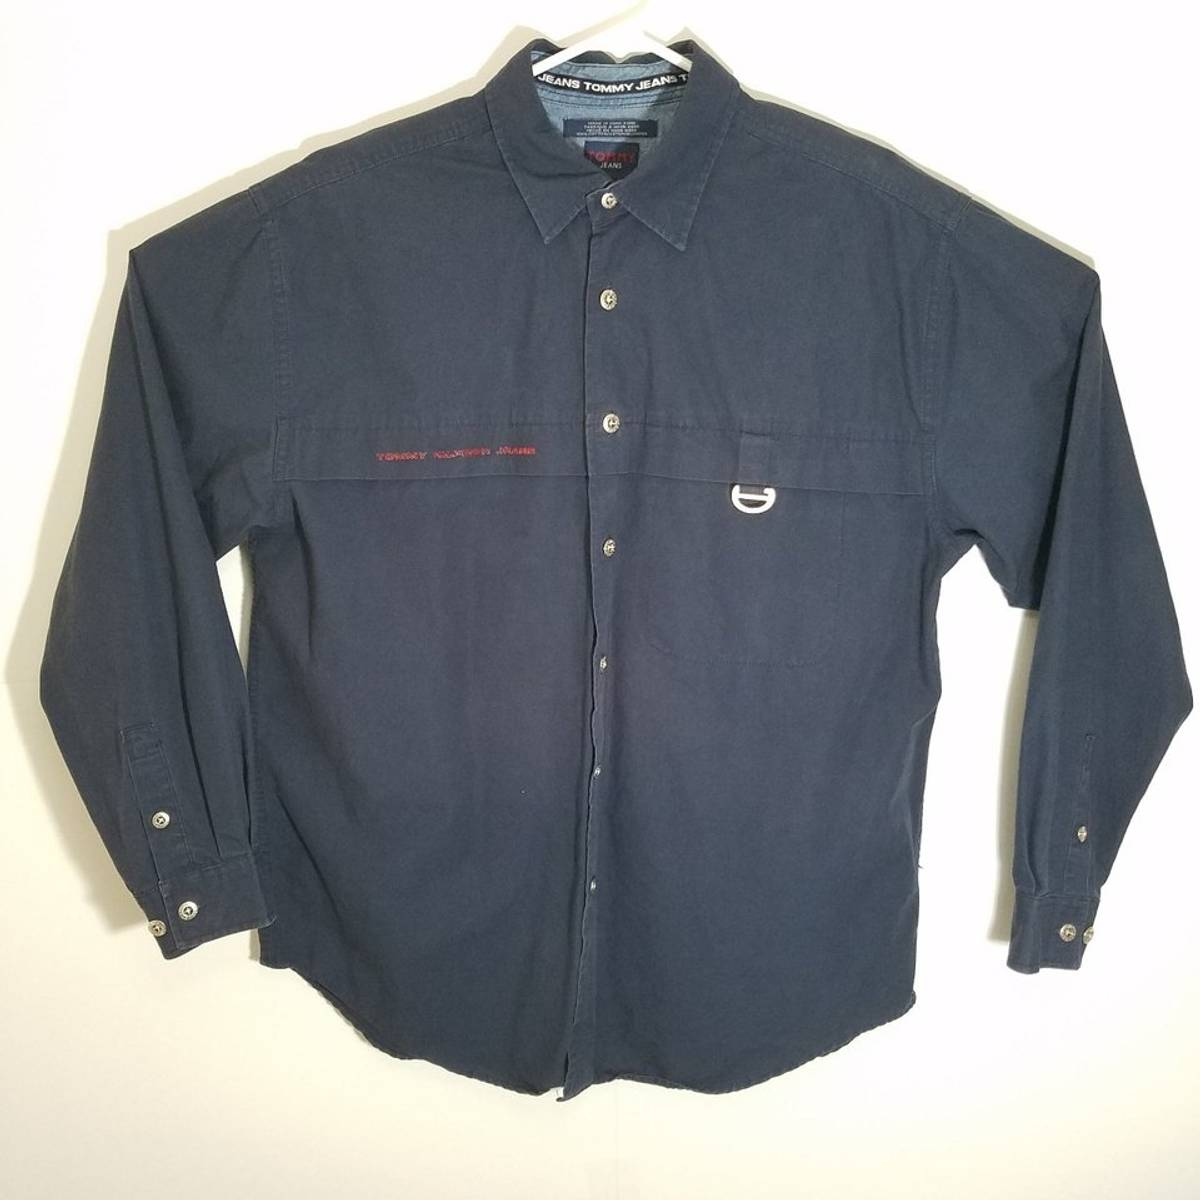 bd637ec3 Tommy Hilfiger ×. Vintage Tommy Hilfiger Tommy Jean's Mens Large XL Dark  Navy Blue Button Down Long ...